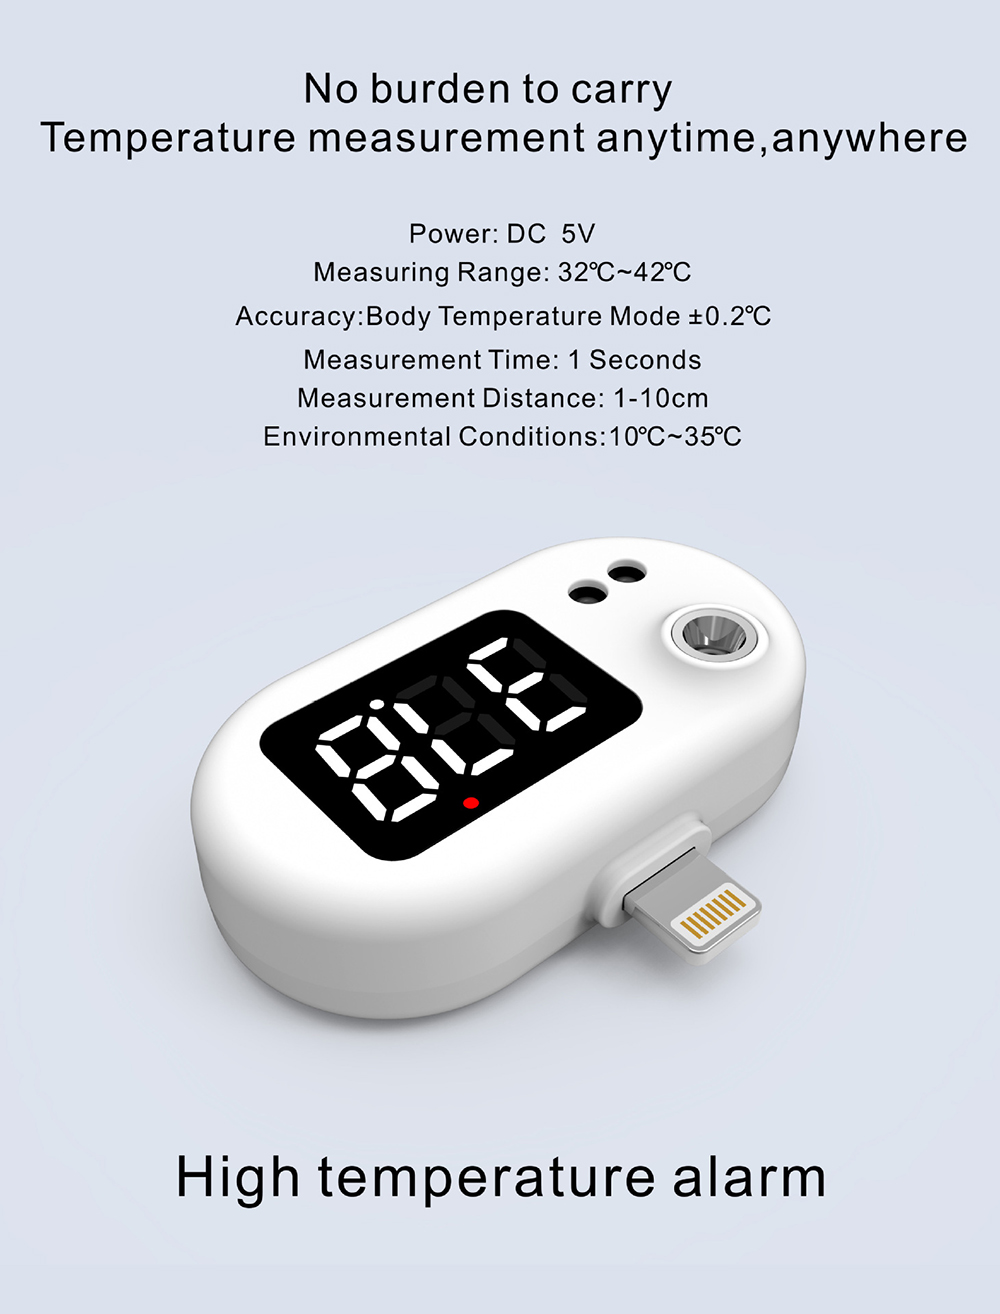 K7 Intelligent Thermometer Automatic Infrared Mobile Phone Non-contact Human Body Thermometer - Black android High temperature alarm